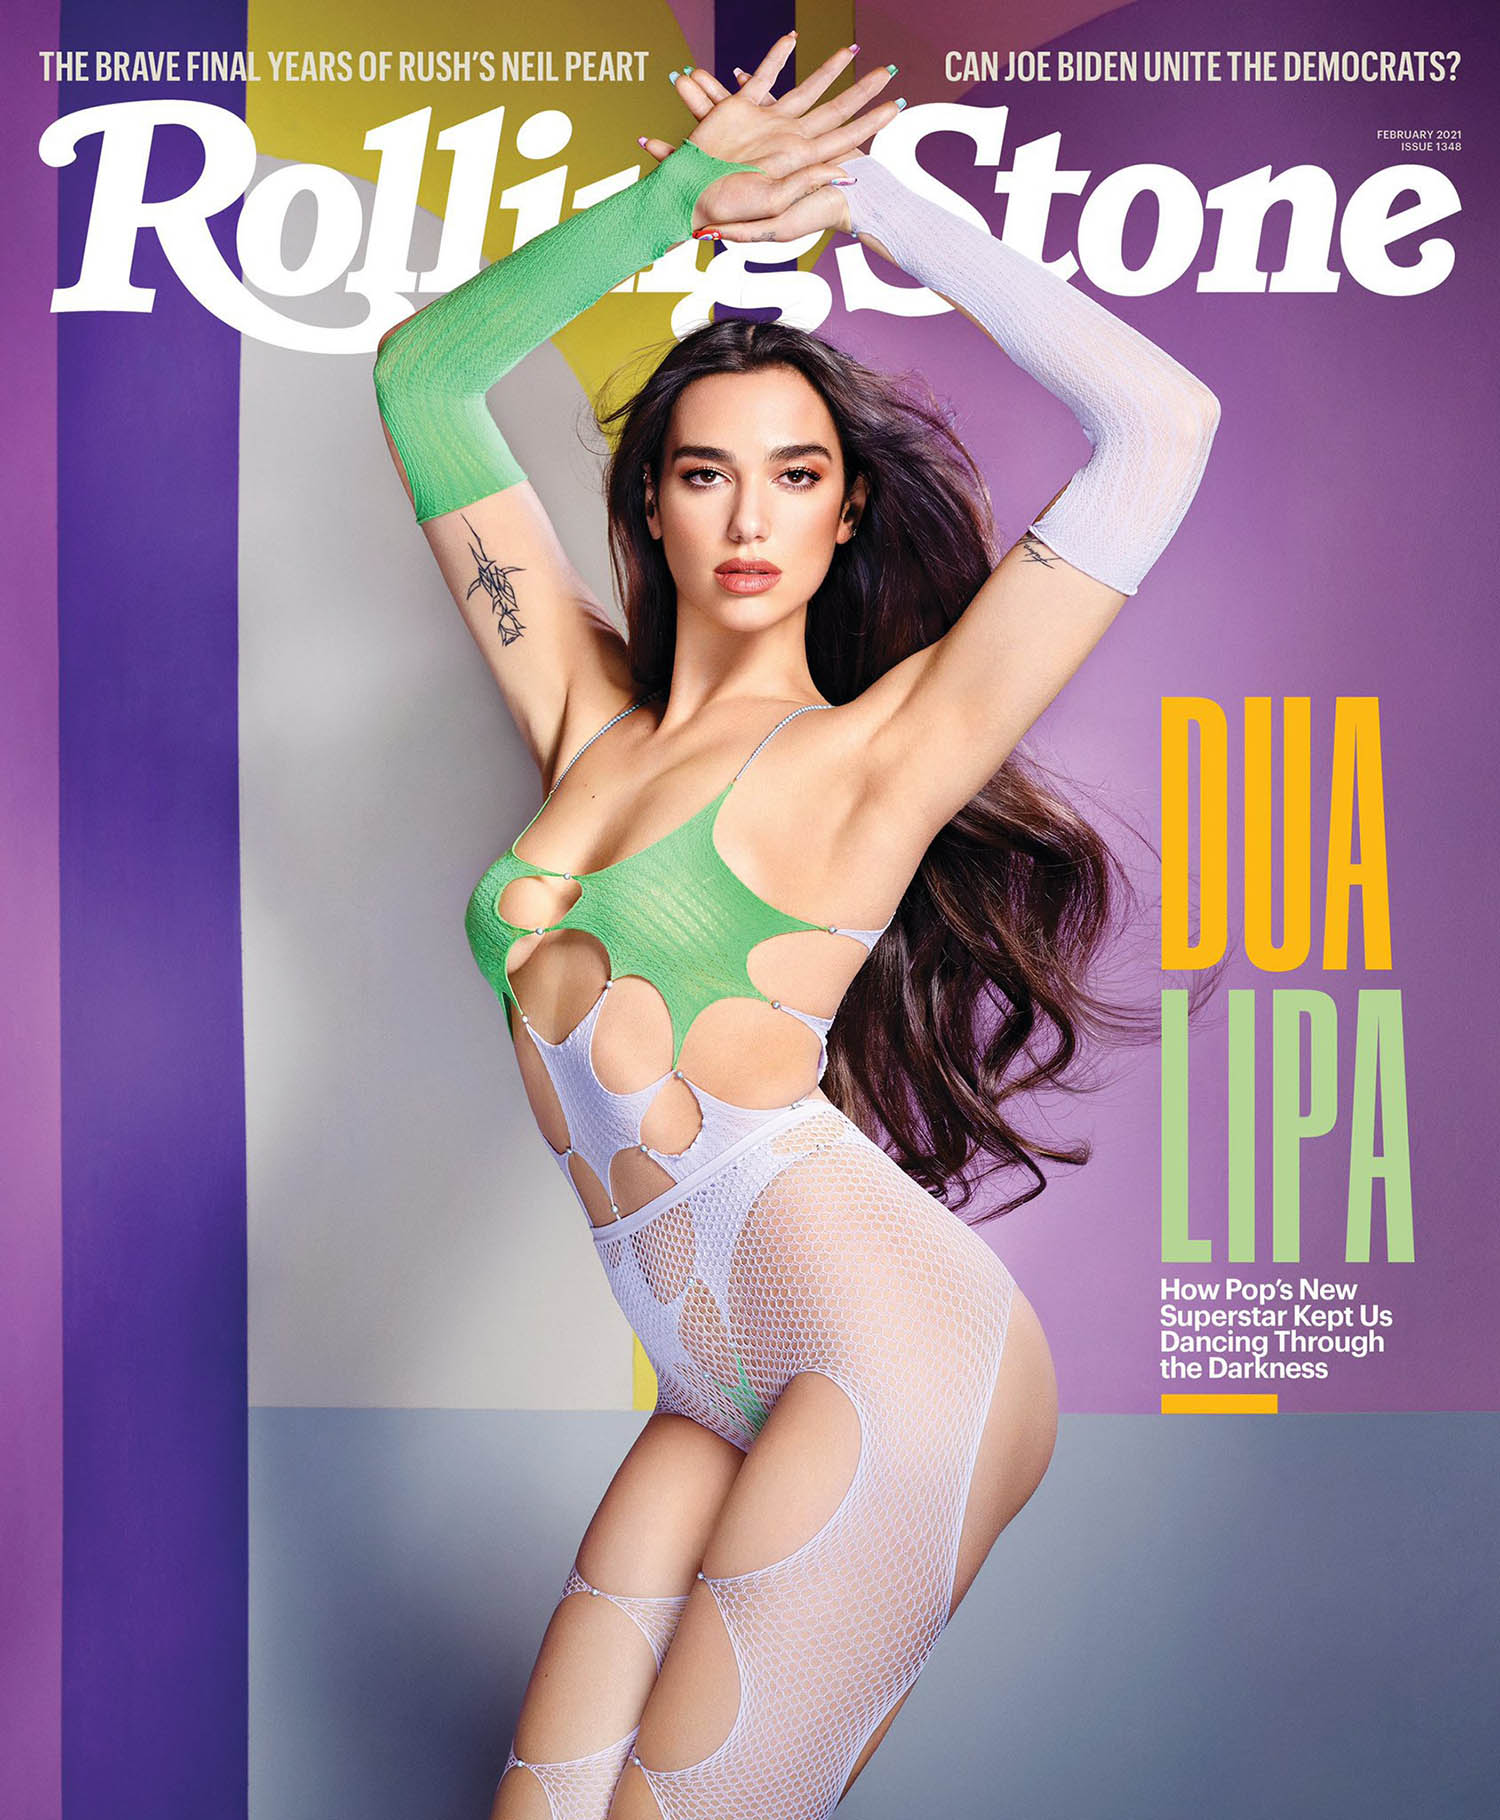 Dua Lipa covers Rolling Stone February 2021 by David LaChapelle